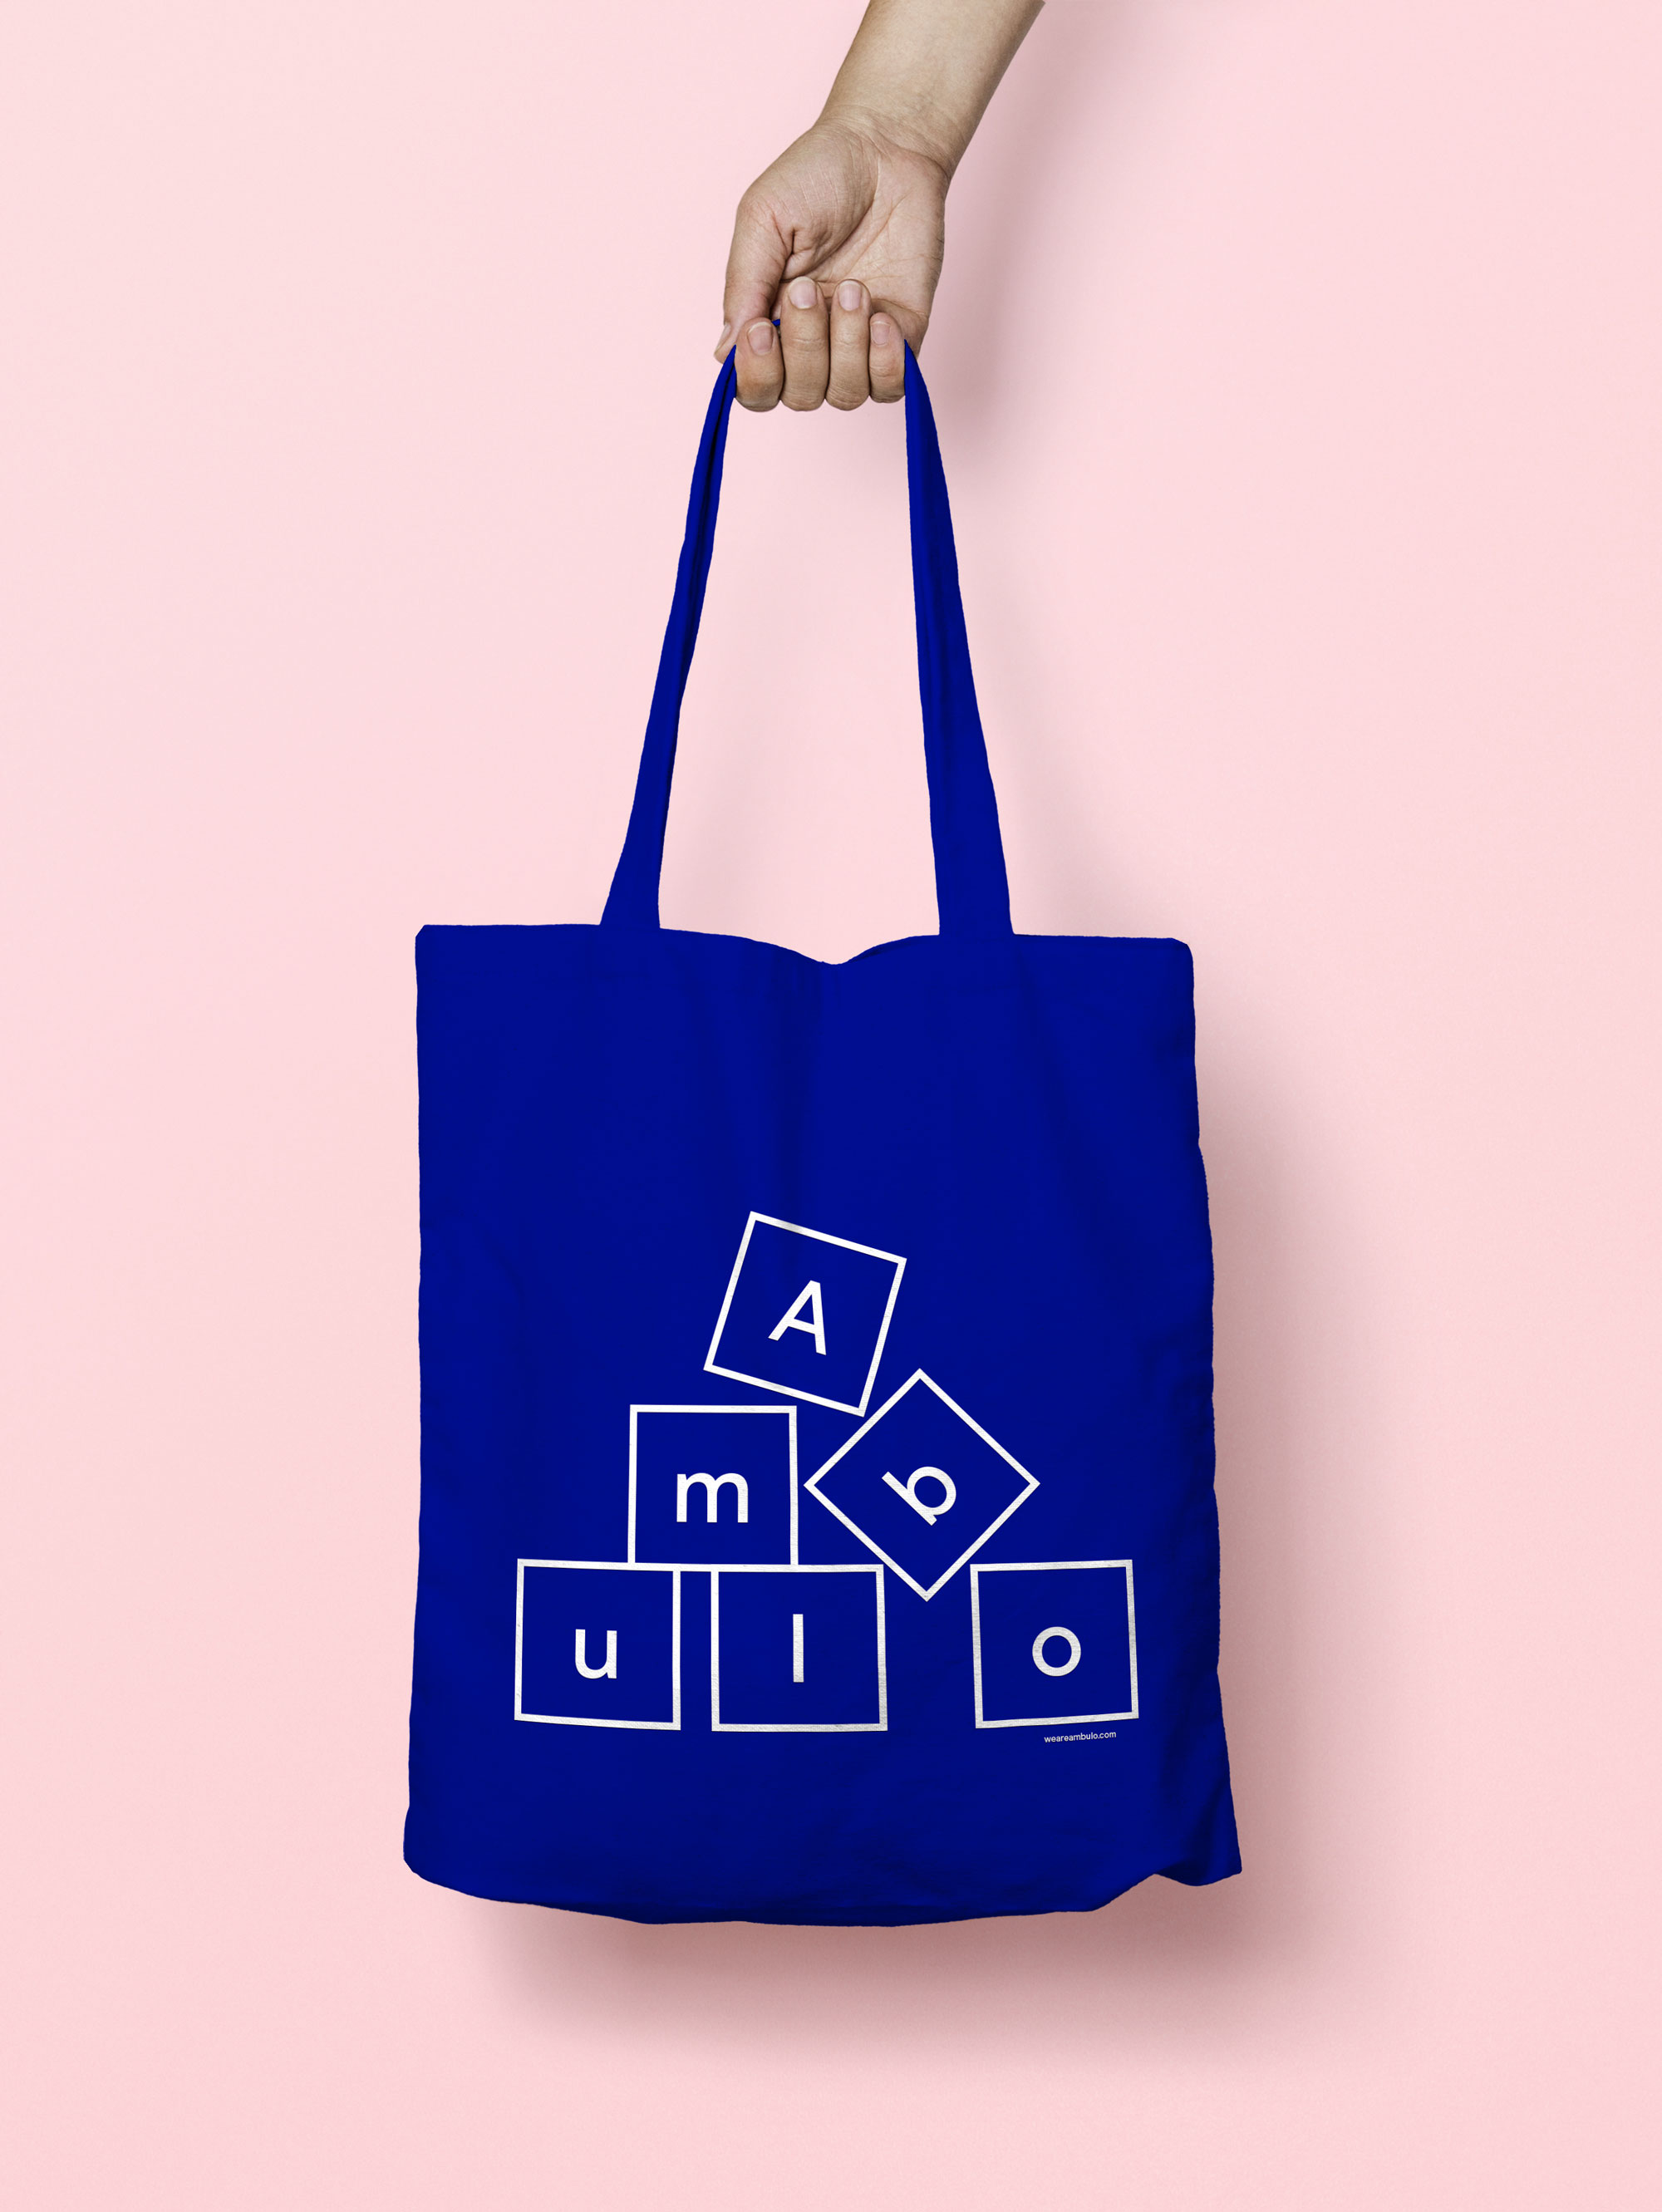 Ambulo tote bag